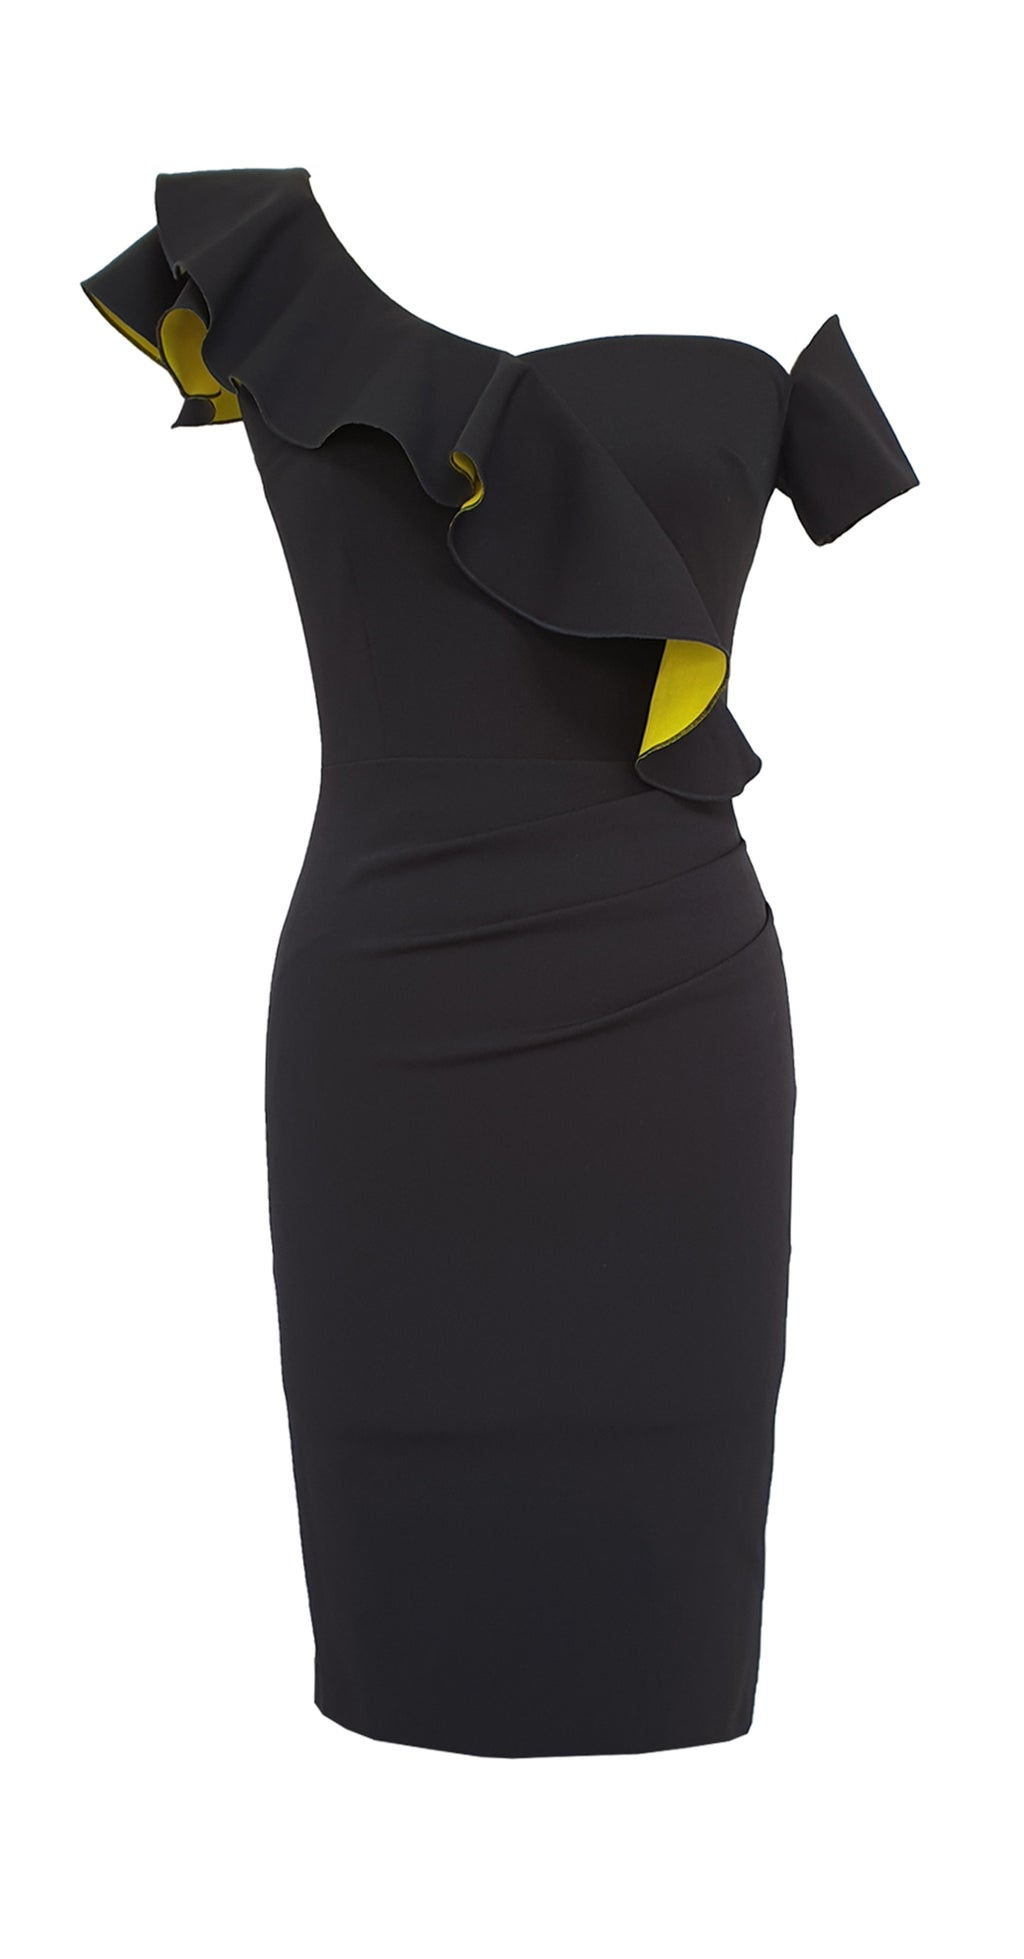 Calypso Dress DRC208 Black/Yellow Contrast